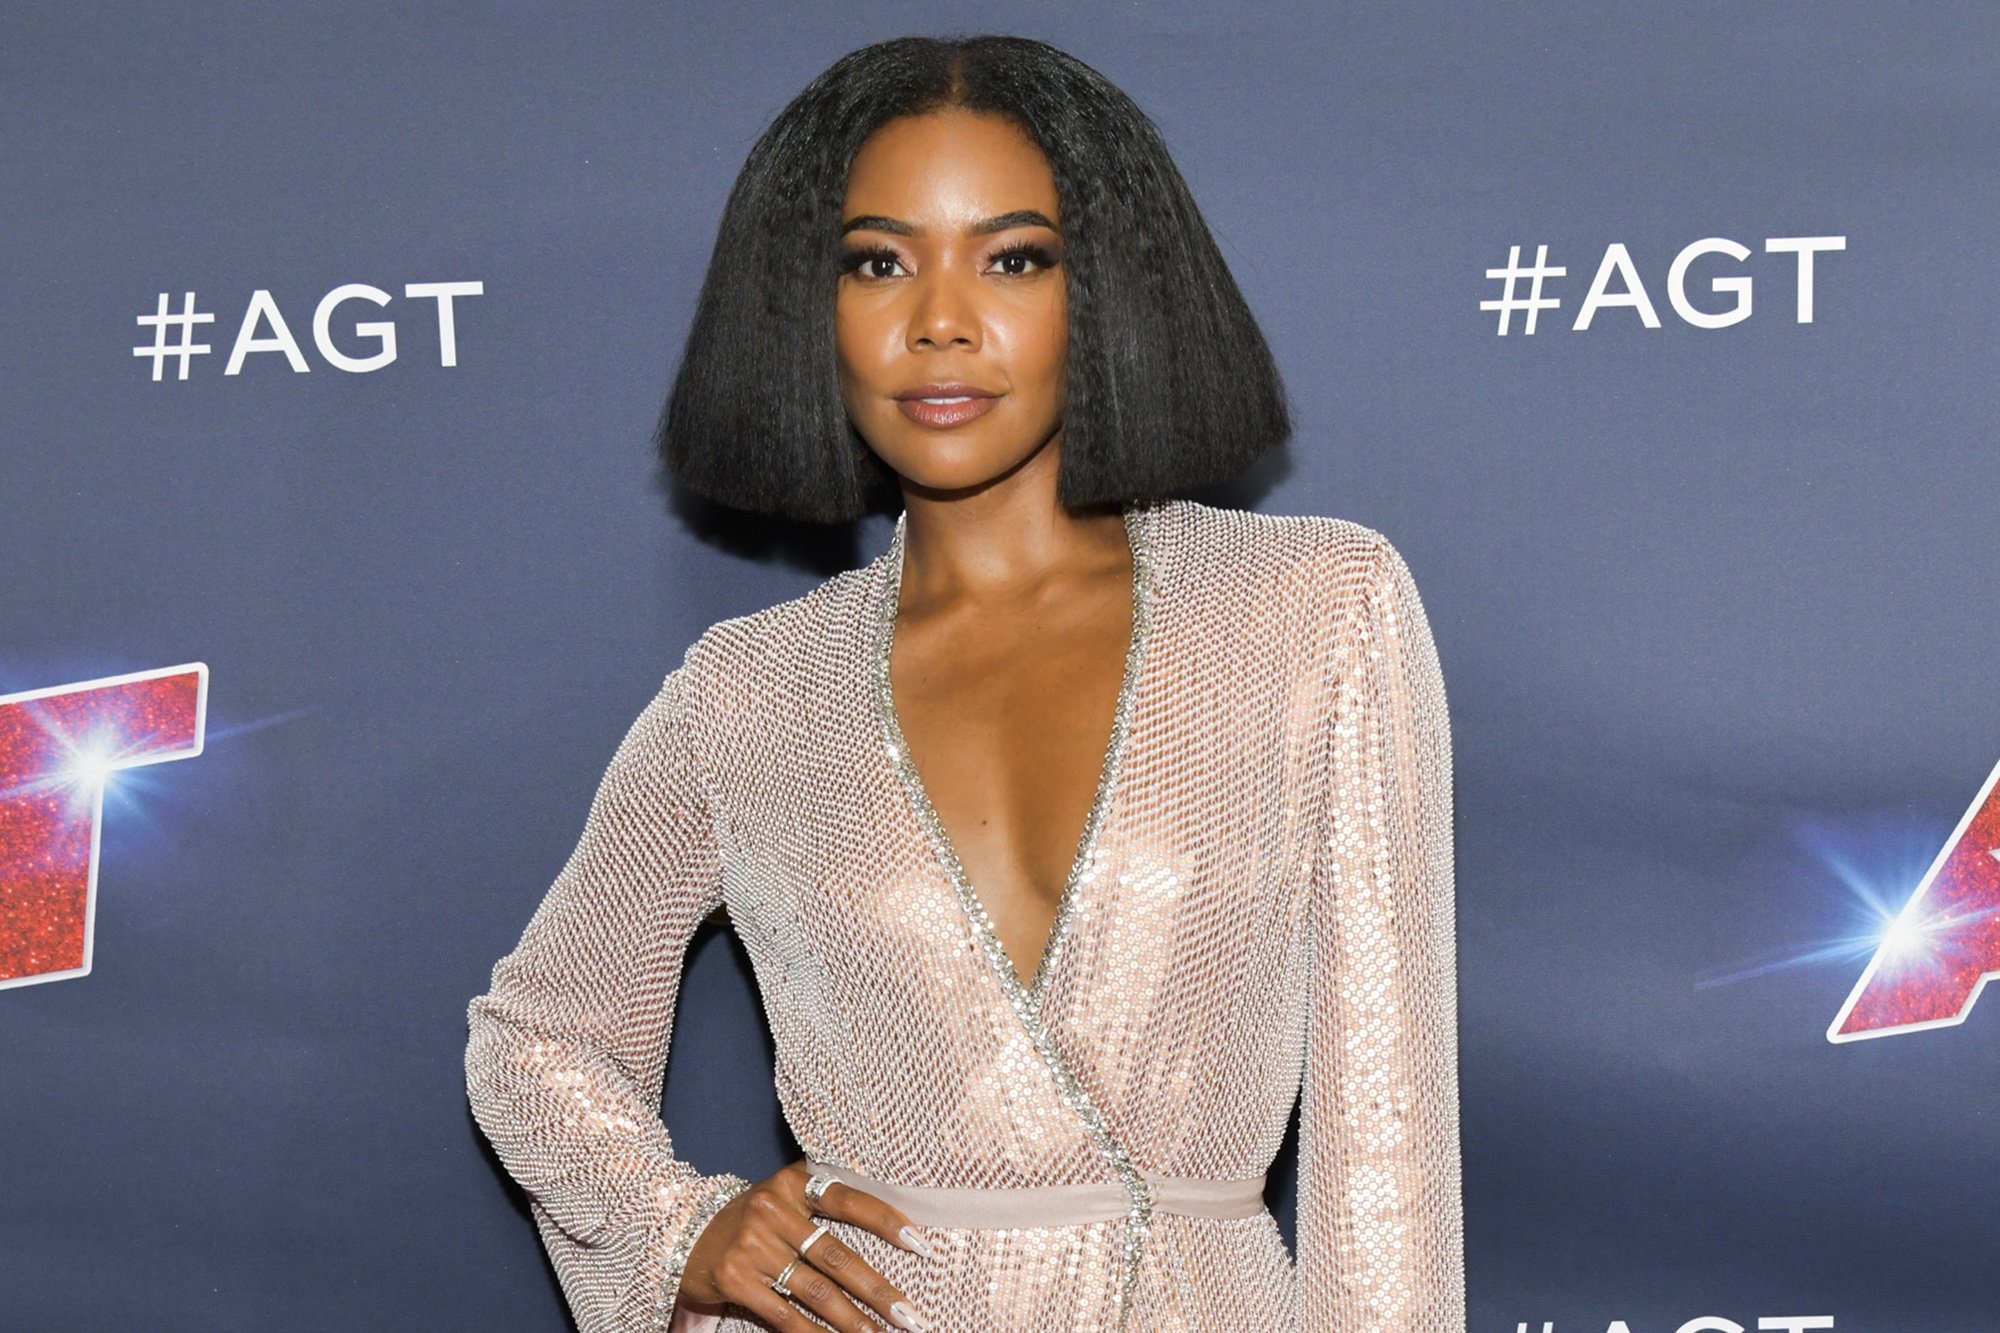 Gabrielle Union Makes Fans Happy With A New Photoshoot Featuring Kaavia James